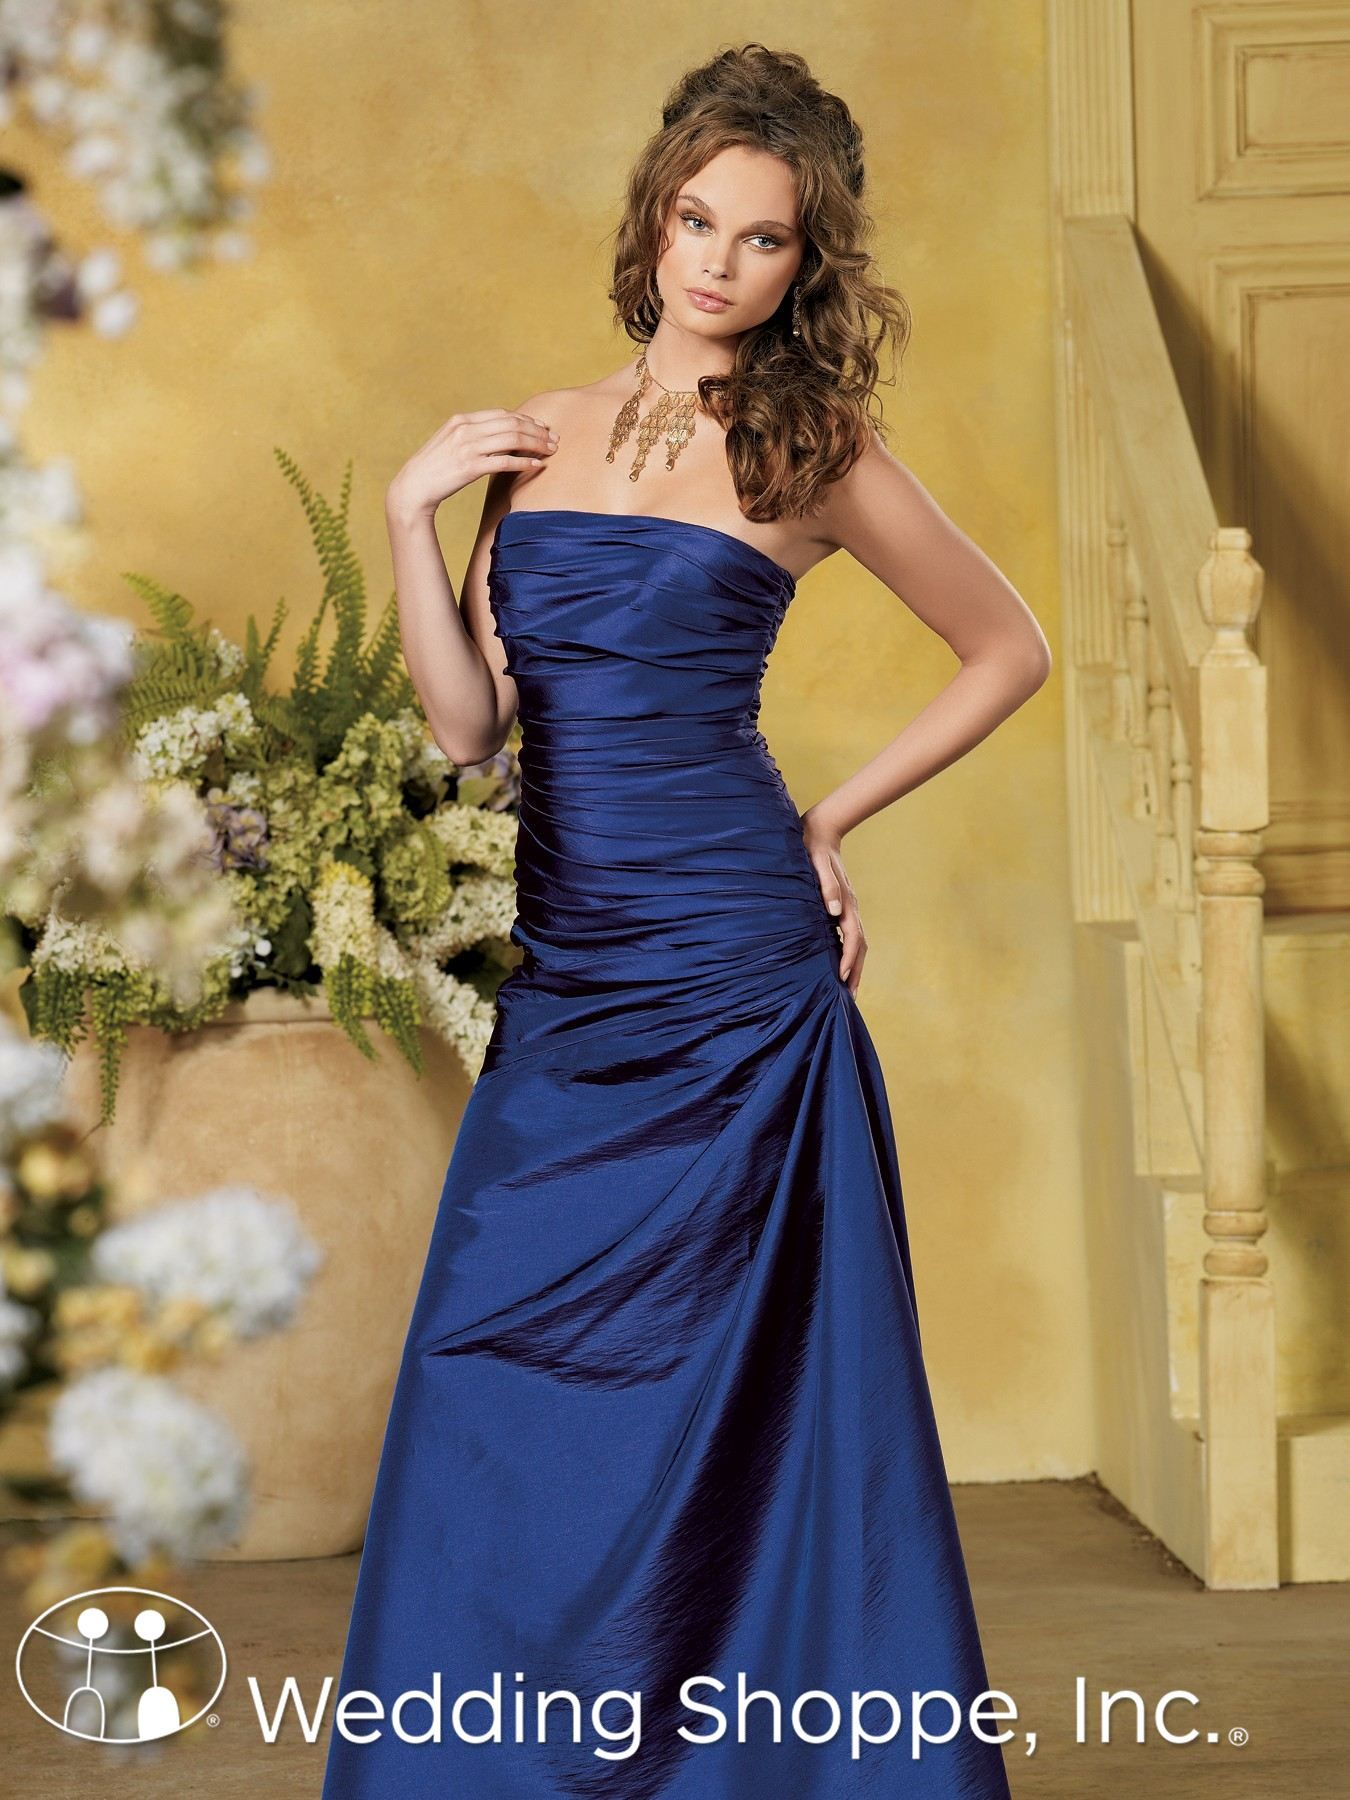 Jordan bridesmaid dress 816 formal gowns pinterest formal jordan bridesmaid dress 816 ombrellifo Image collections